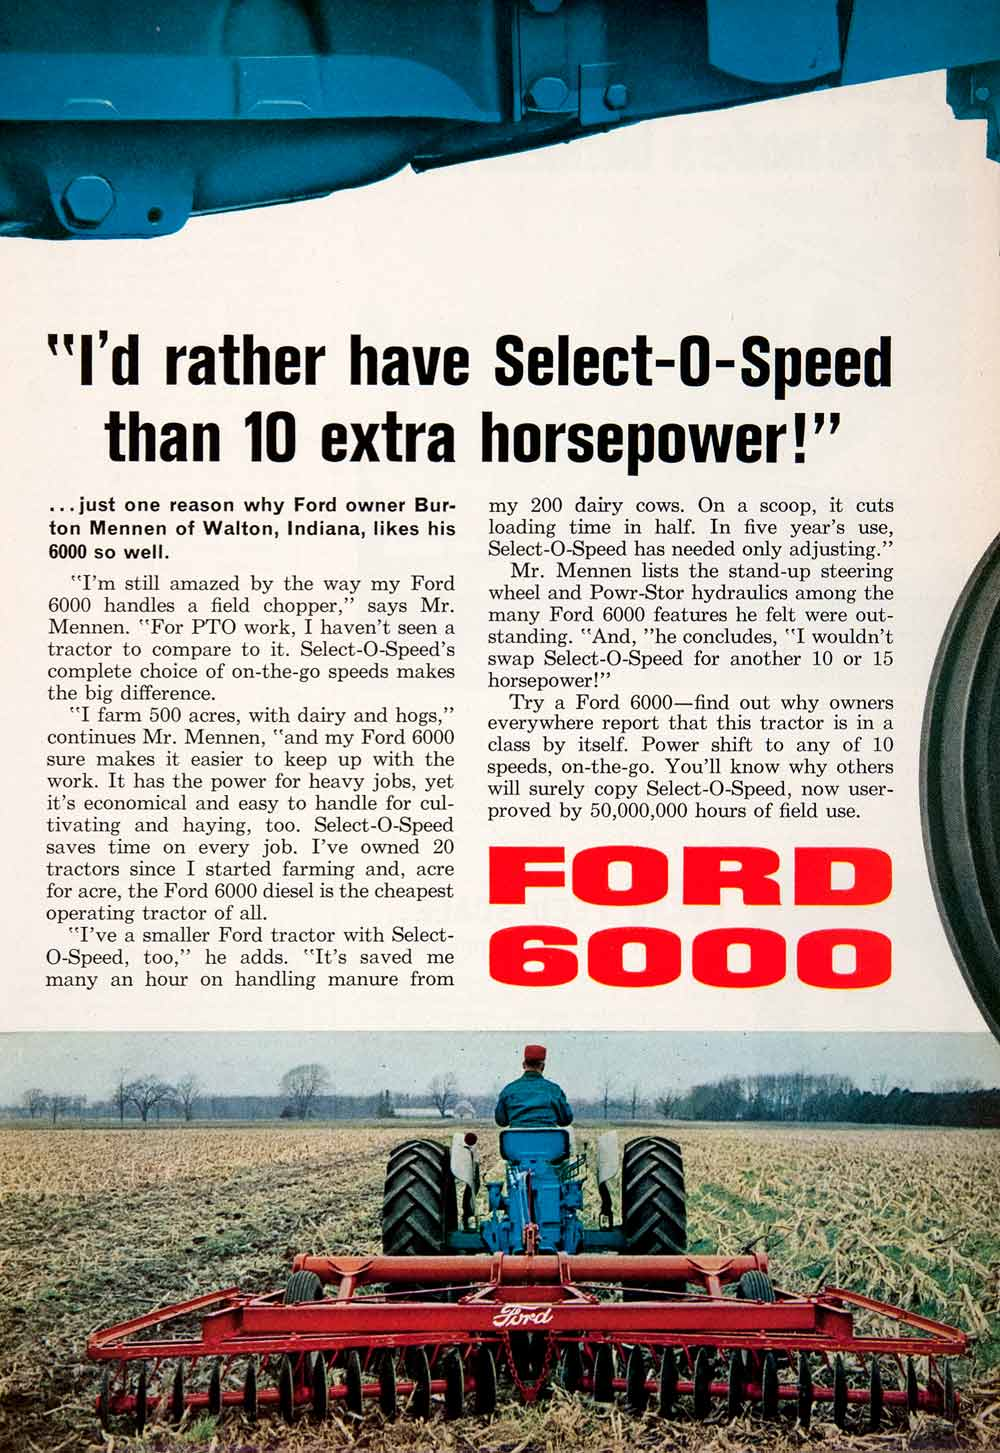 1964 Ad Ford 6000 Tractor Plow Burton Mennen Walton Indiana Agriculture SF4